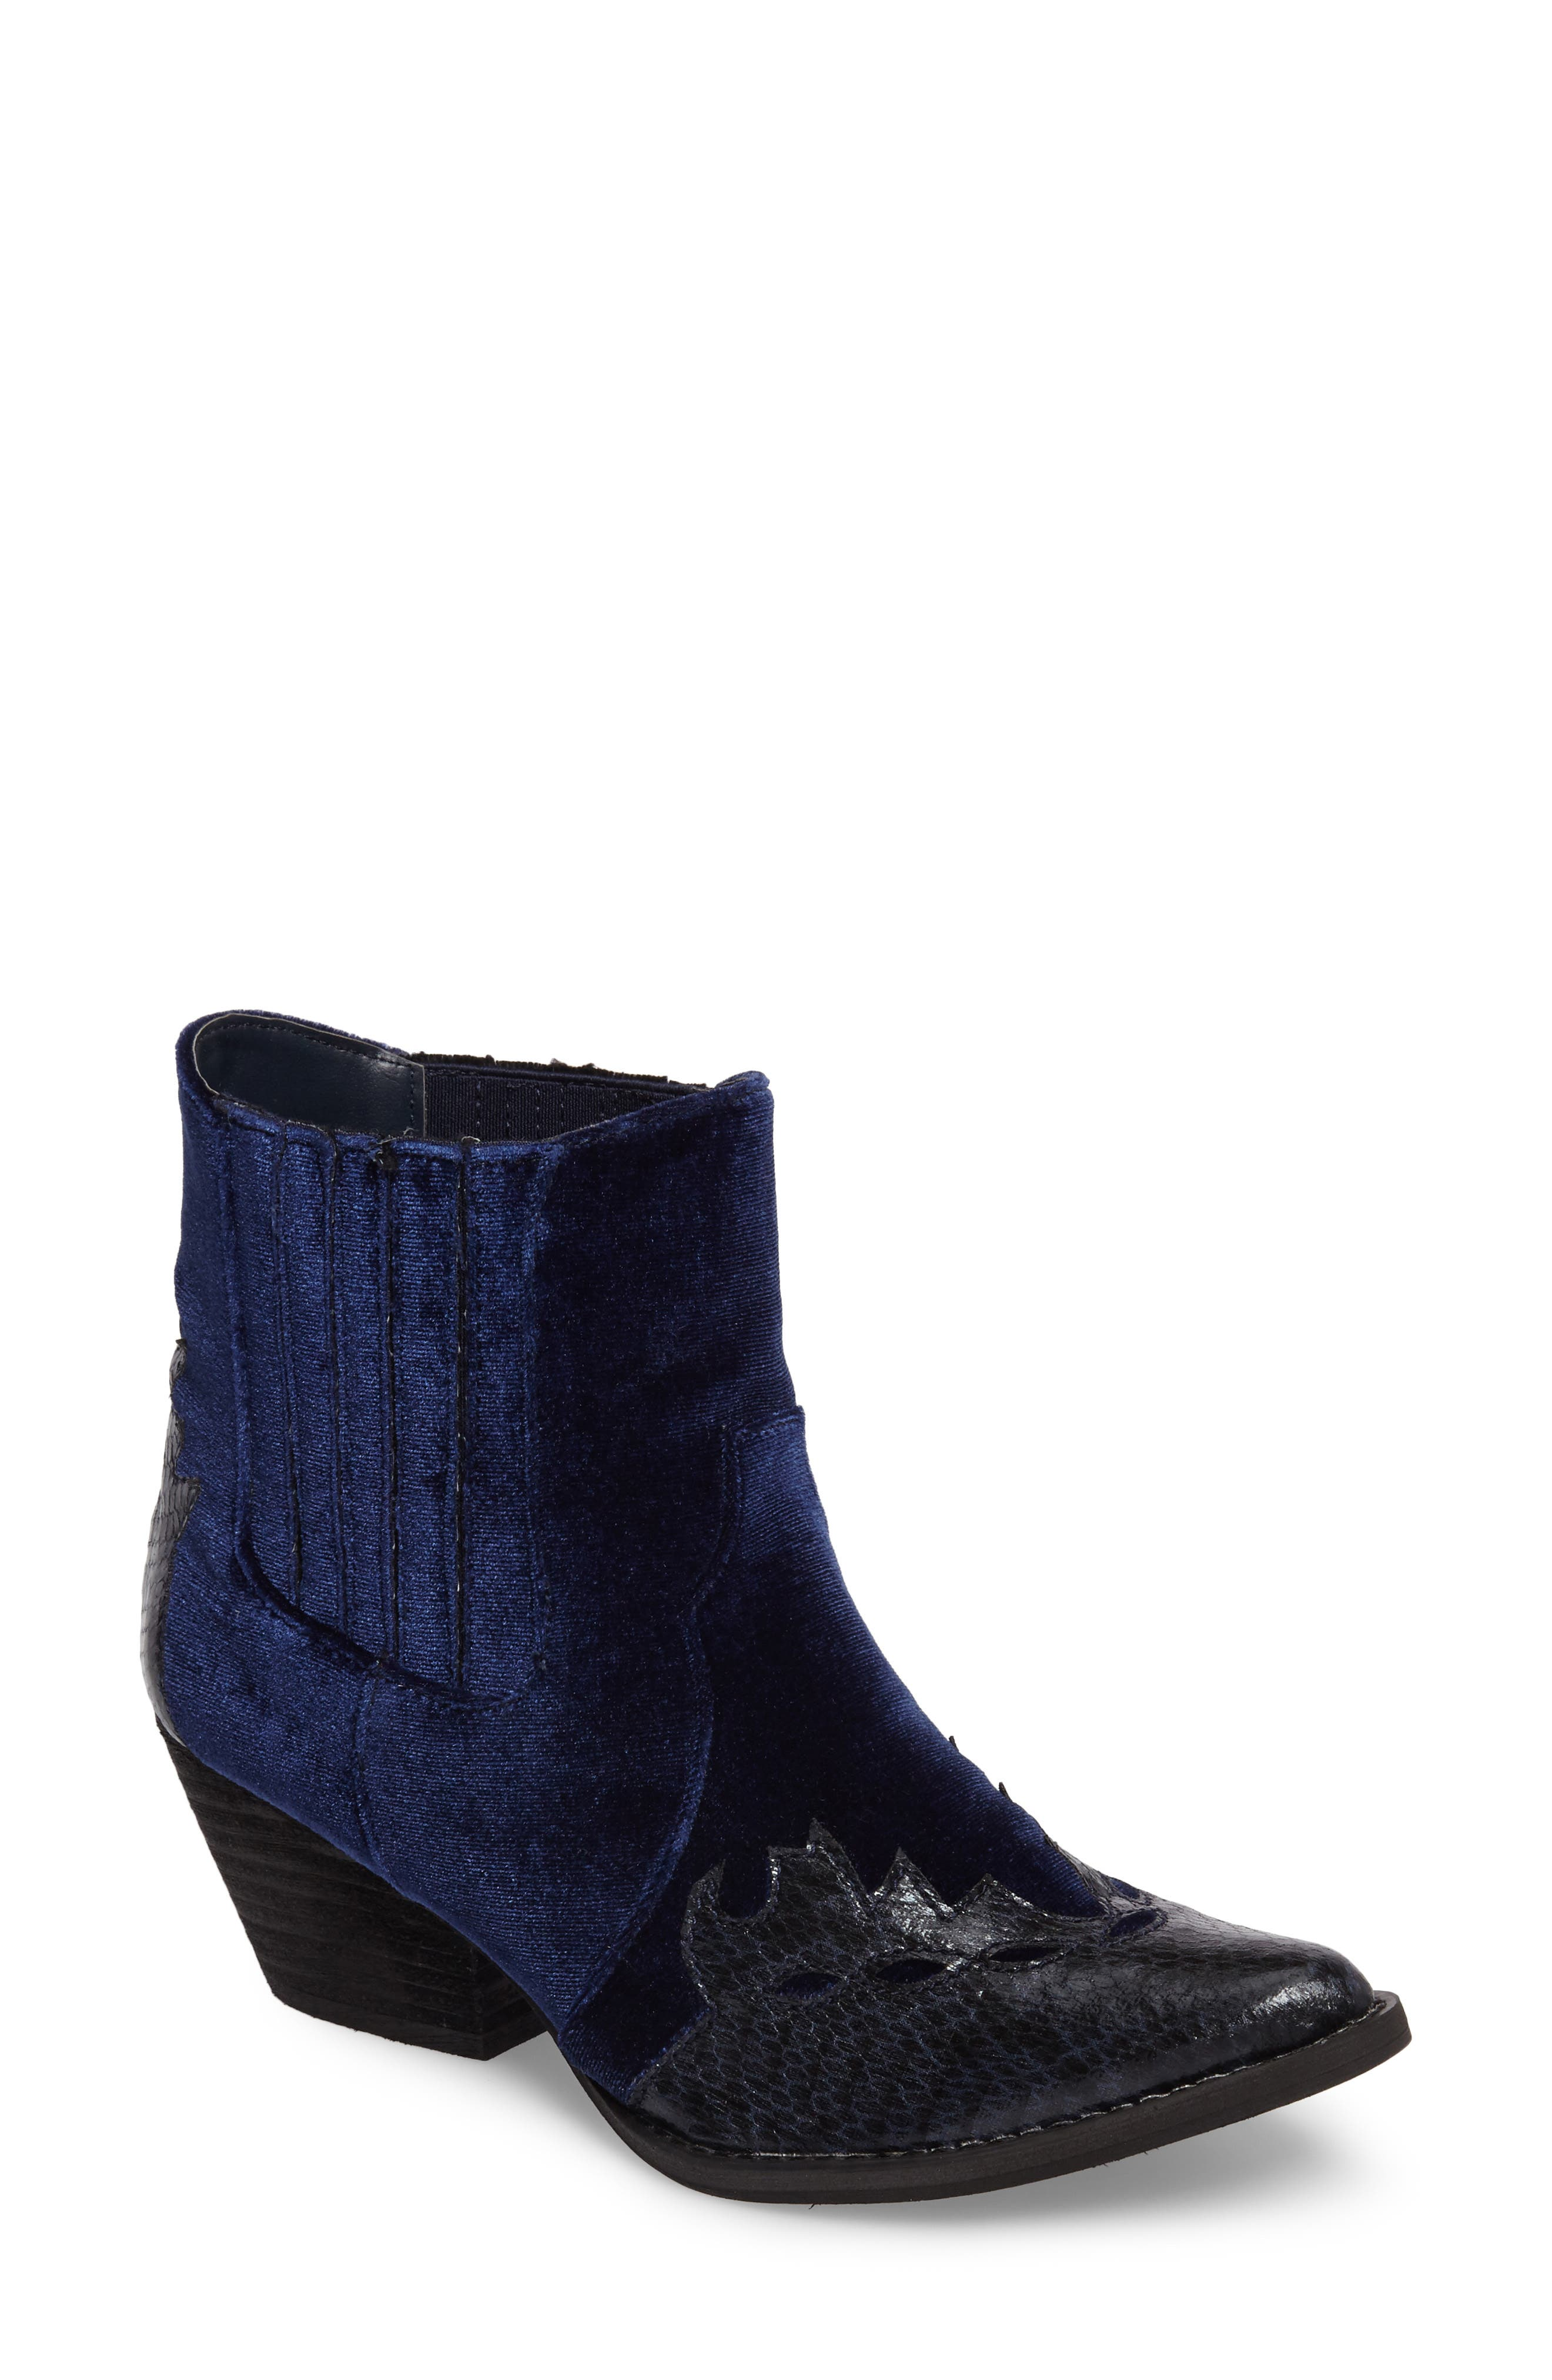 Sava Western Chelsea Bootie,                             Main thumbnail 1, color,                             Navy